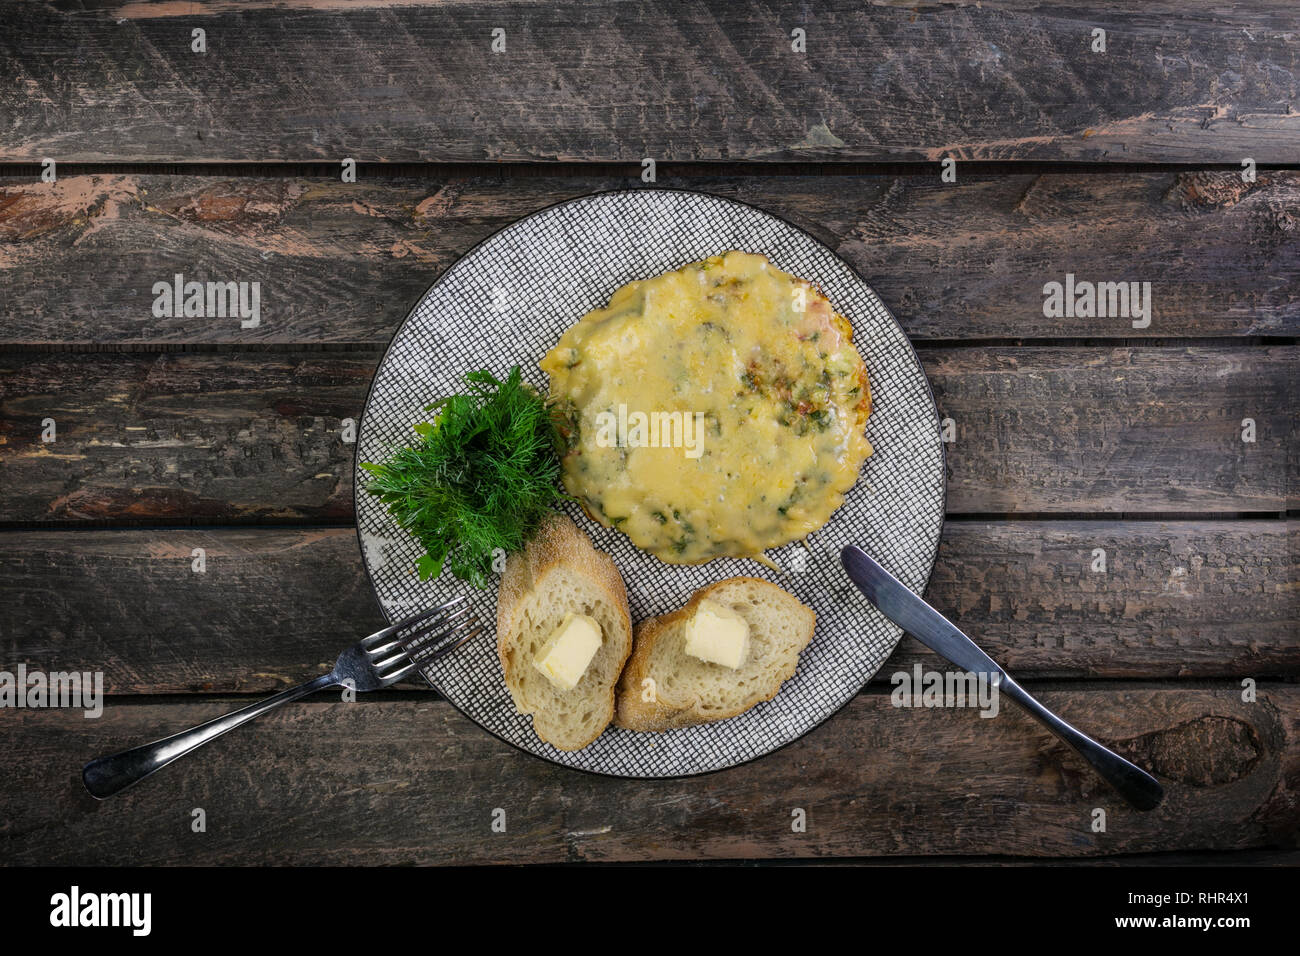 Omelet with tomatoes, zucchini and mushrooms served by cutlery. Omelette breakfast. Healthy food. Top view. - Stock Image